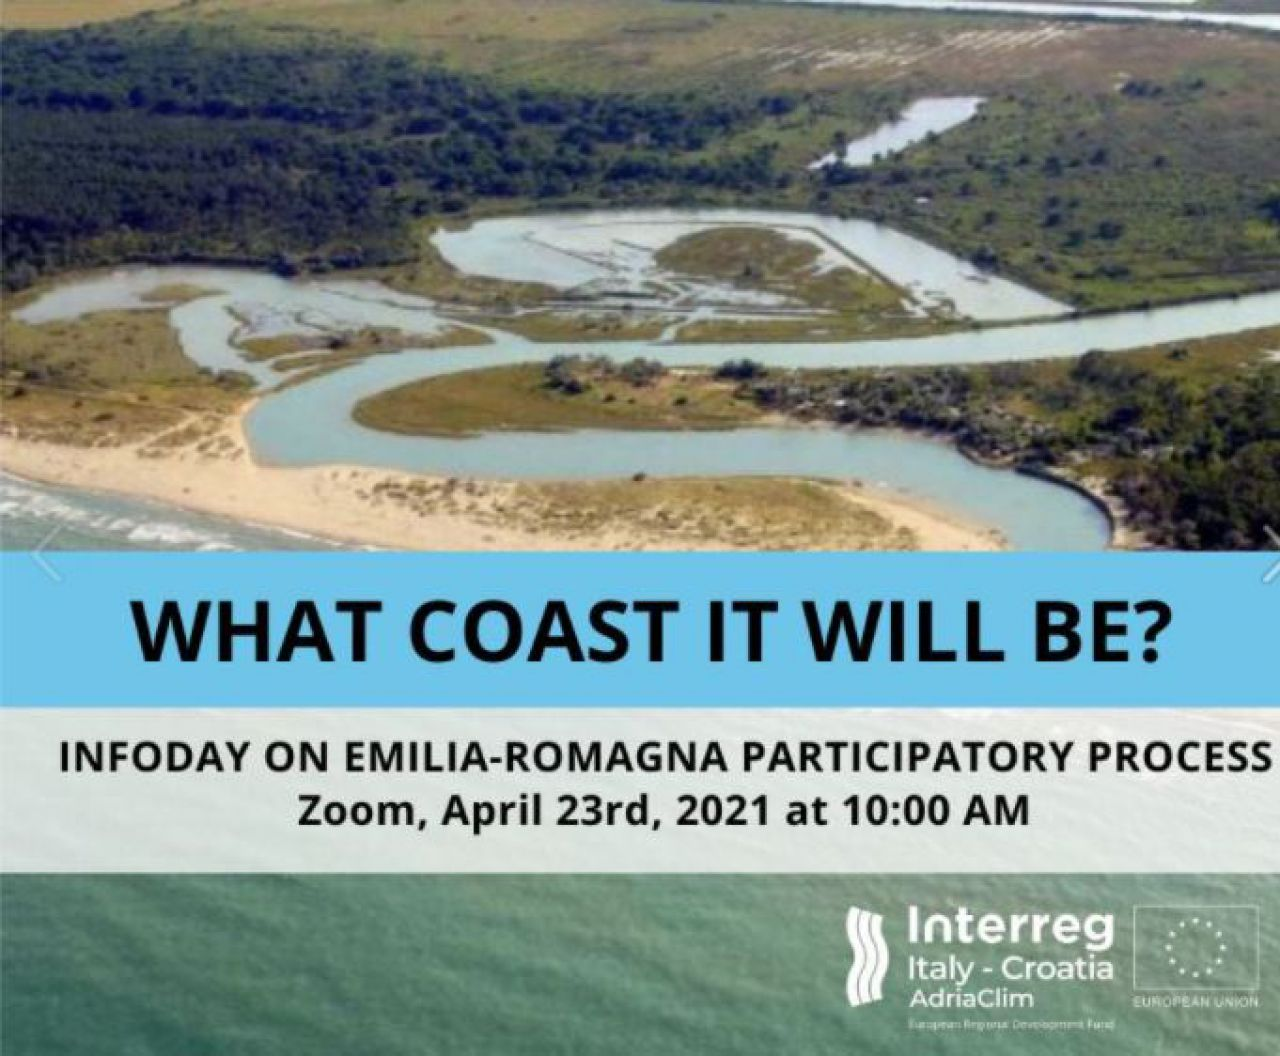 """WHAT COAST IT WILL BE?"" - INFODAY"